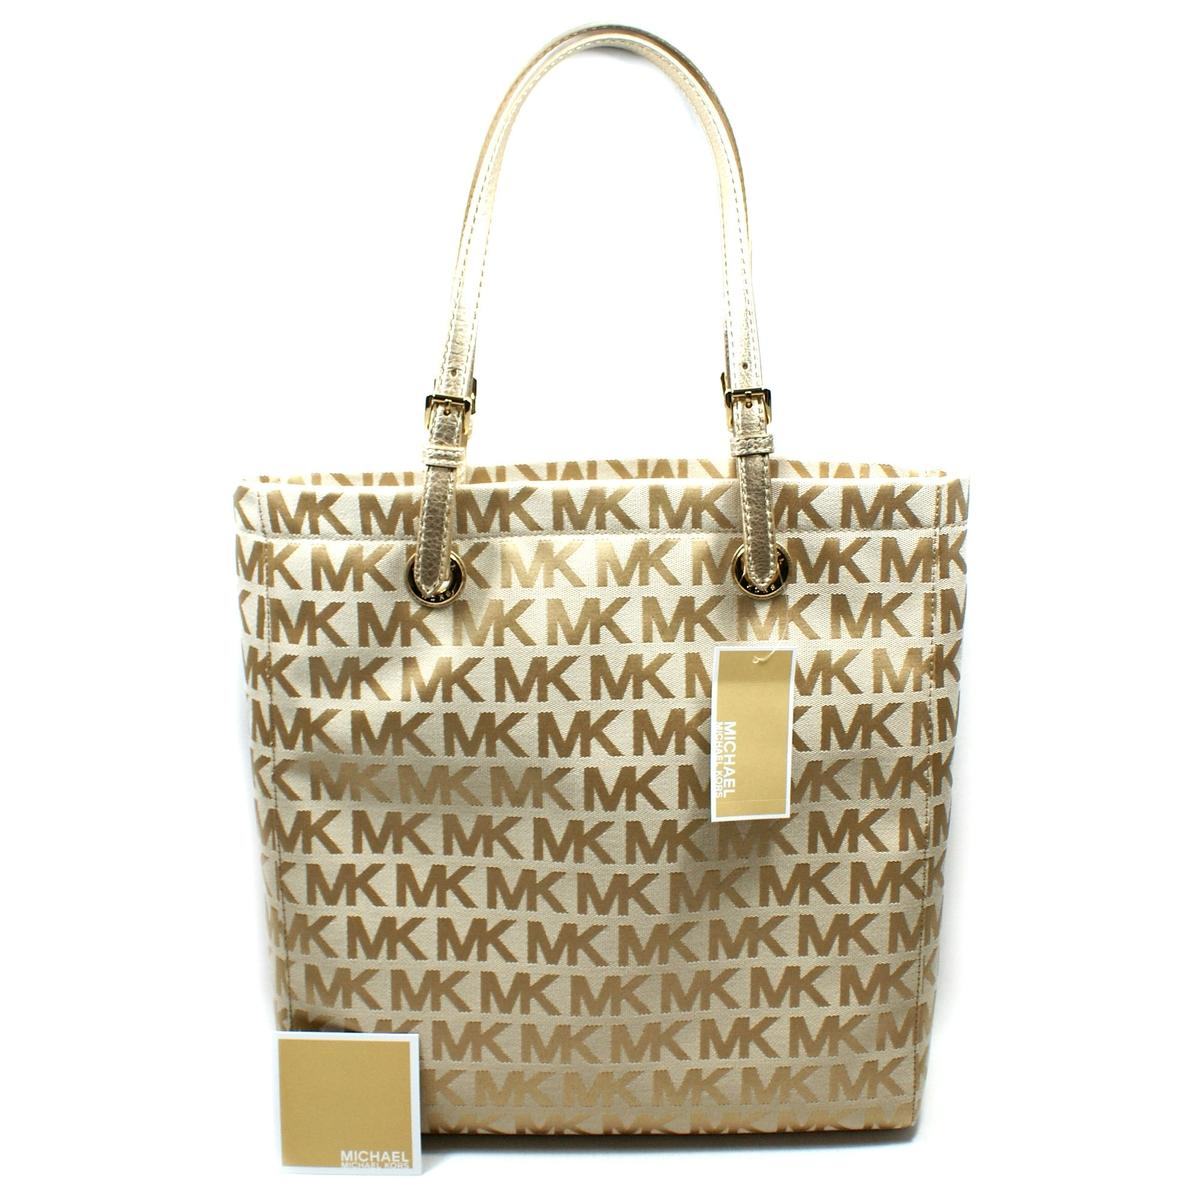 Shop at Dillard's for all your MICHAEL Michael Kors crossbody bags needs from brands like MICHAEL Michael Kors, Coach, Brahmin, Calvin Klein, Dooney & Bourke, Fossil, Kate Landry, Patricia Nash, Vera Bradley, The Sak and more.